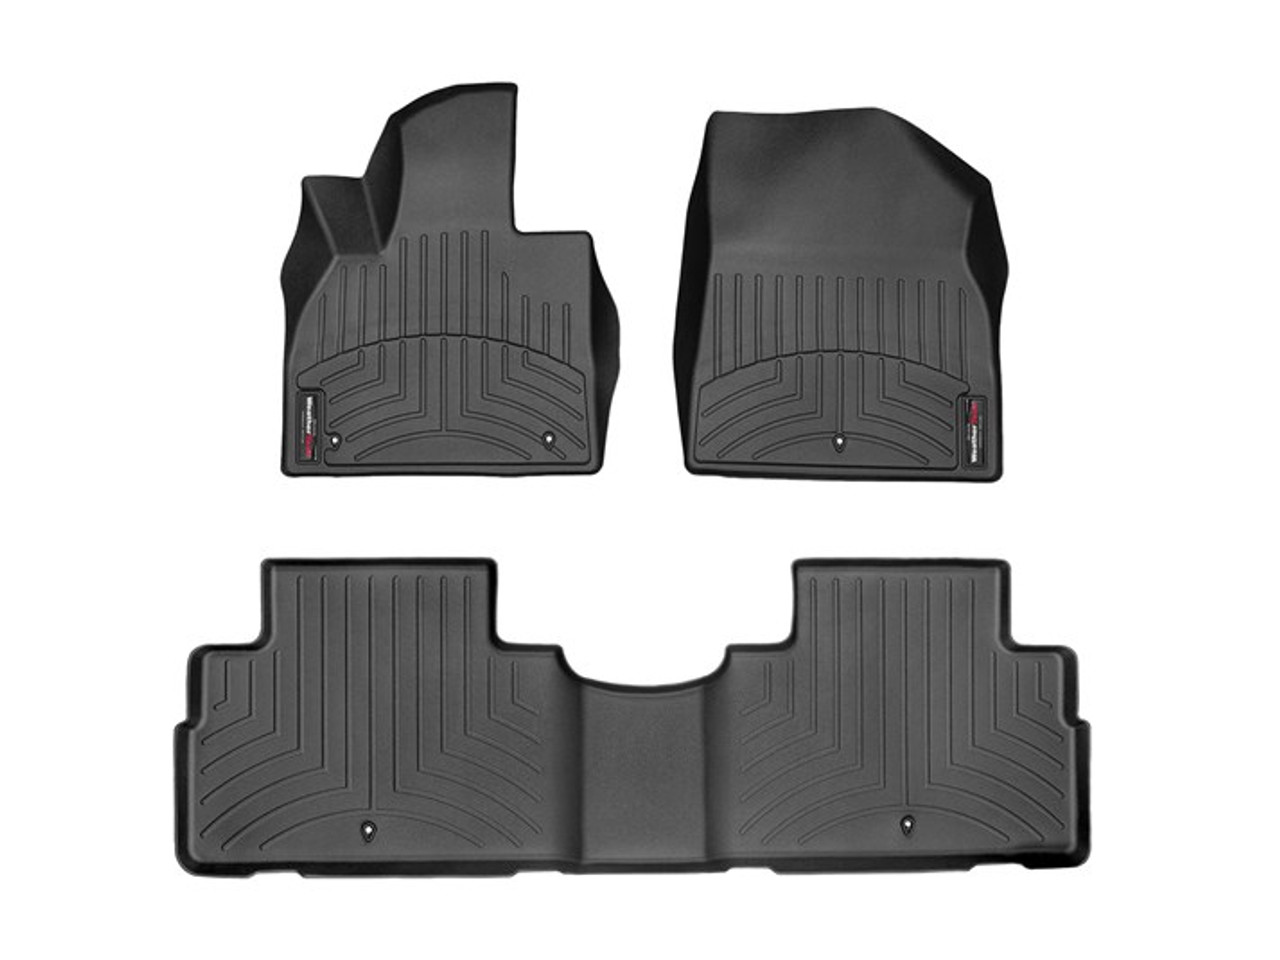 2020-2022 Hyundai Palisade WeatherTech Floor Liners - First and Second Row (Black)